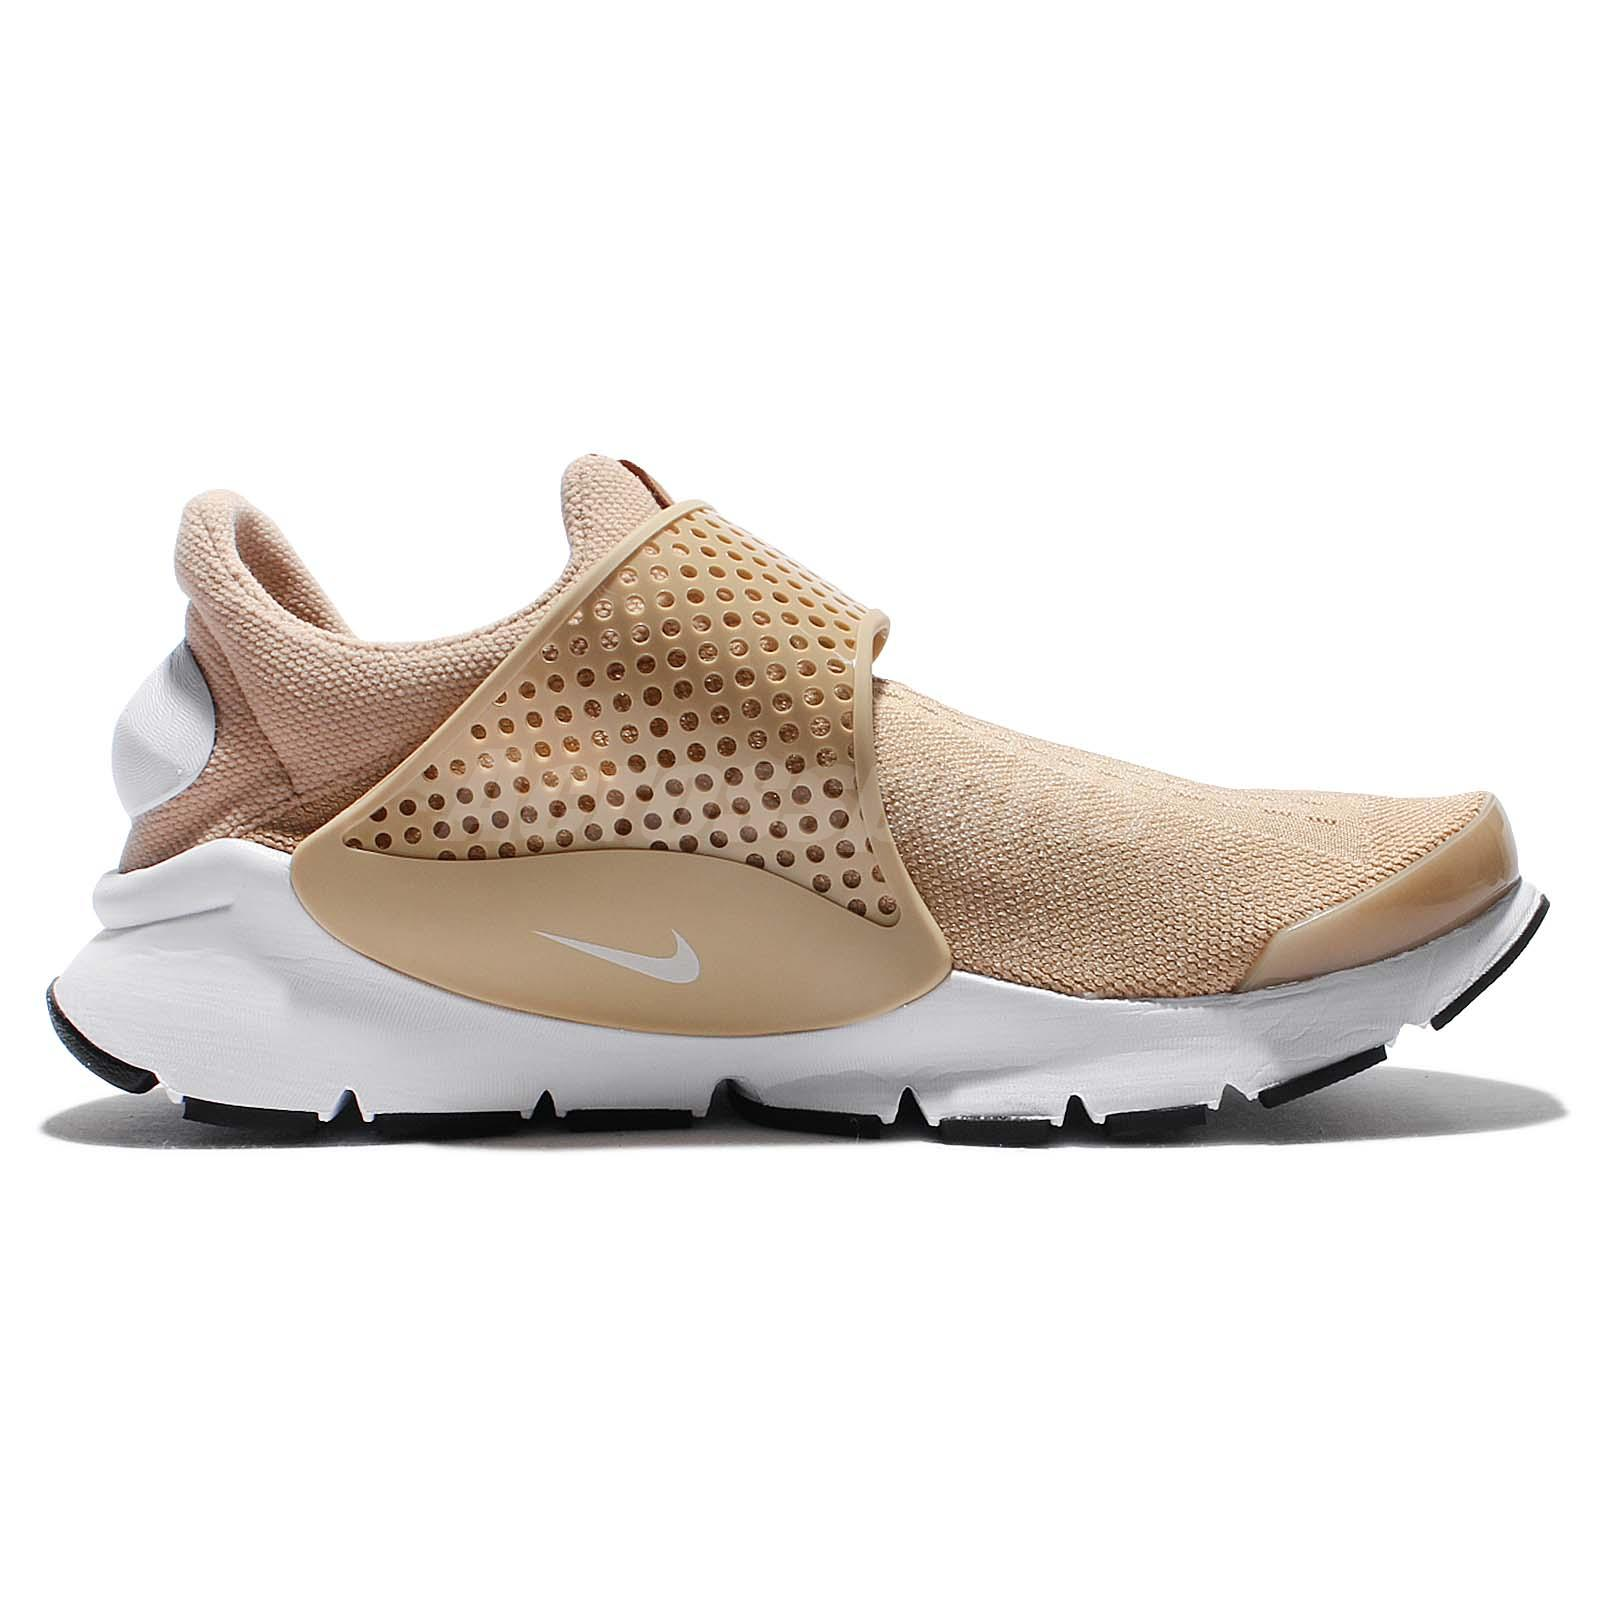 d77bf45e418 ... sock dart sp lode shoes high quality outdoor Condition Brand New With  Box Nike ...